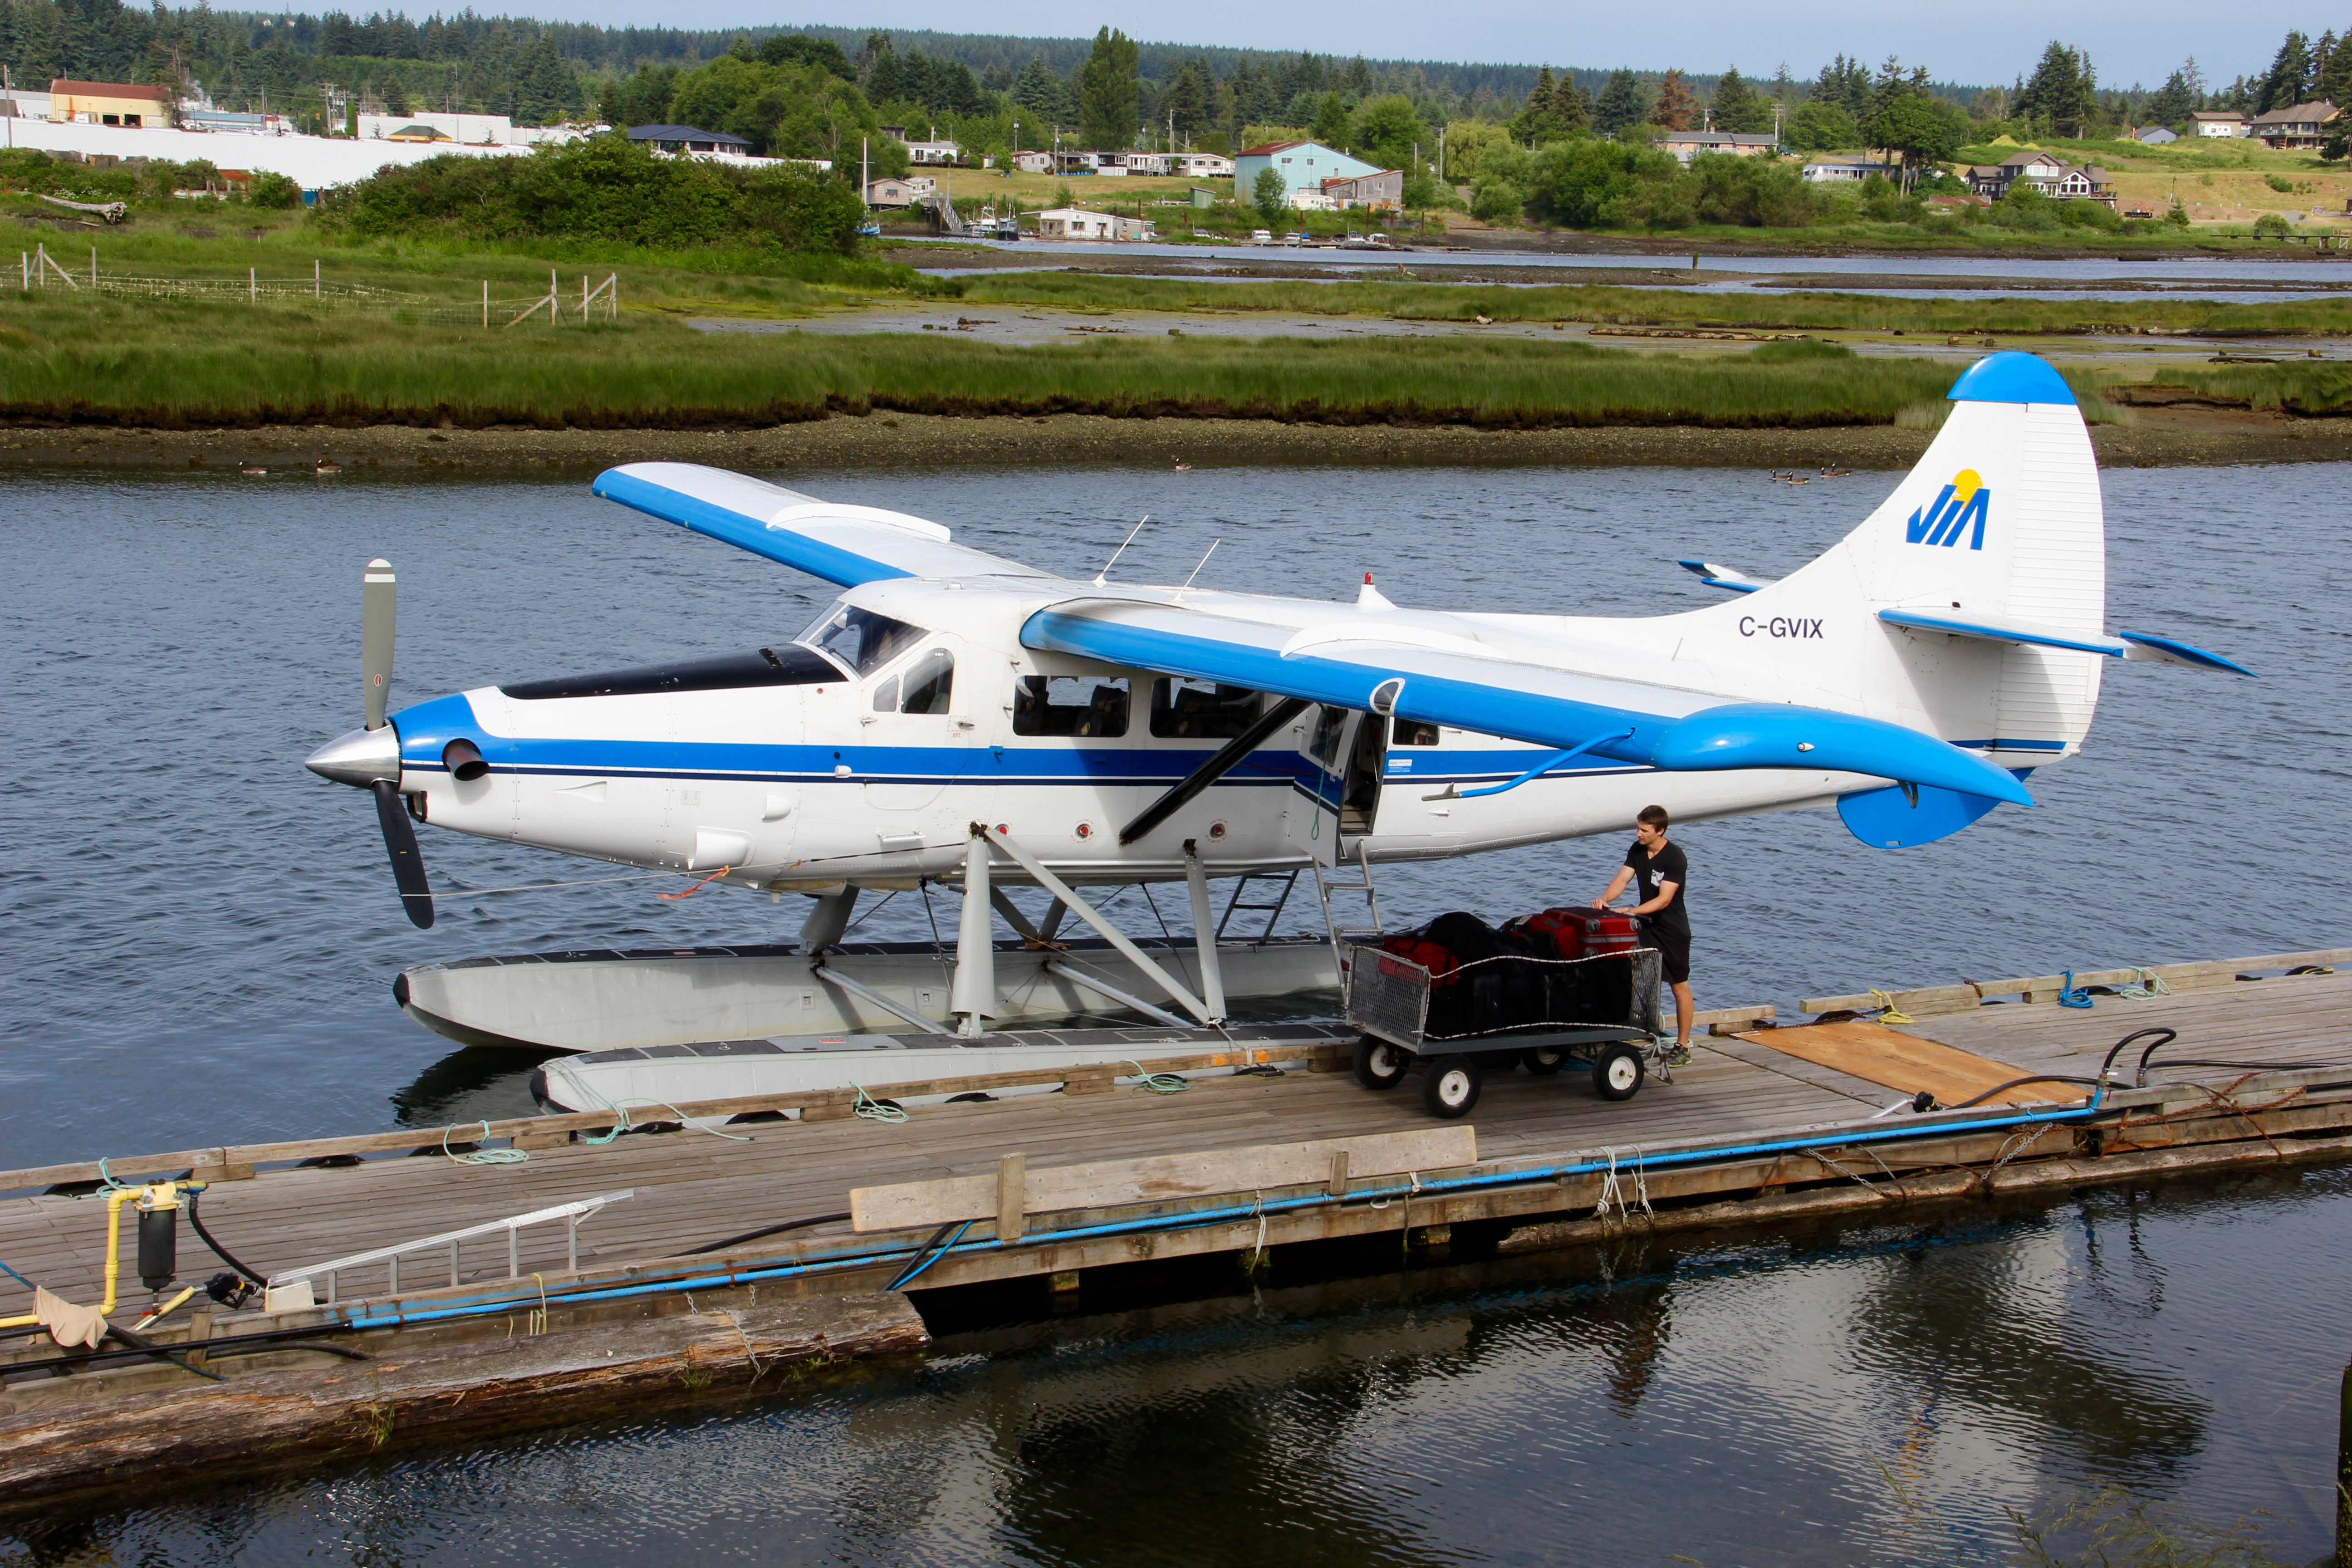 File:vancouver Island Air Float Plane, Campbell River, British Columbia,  Canada (